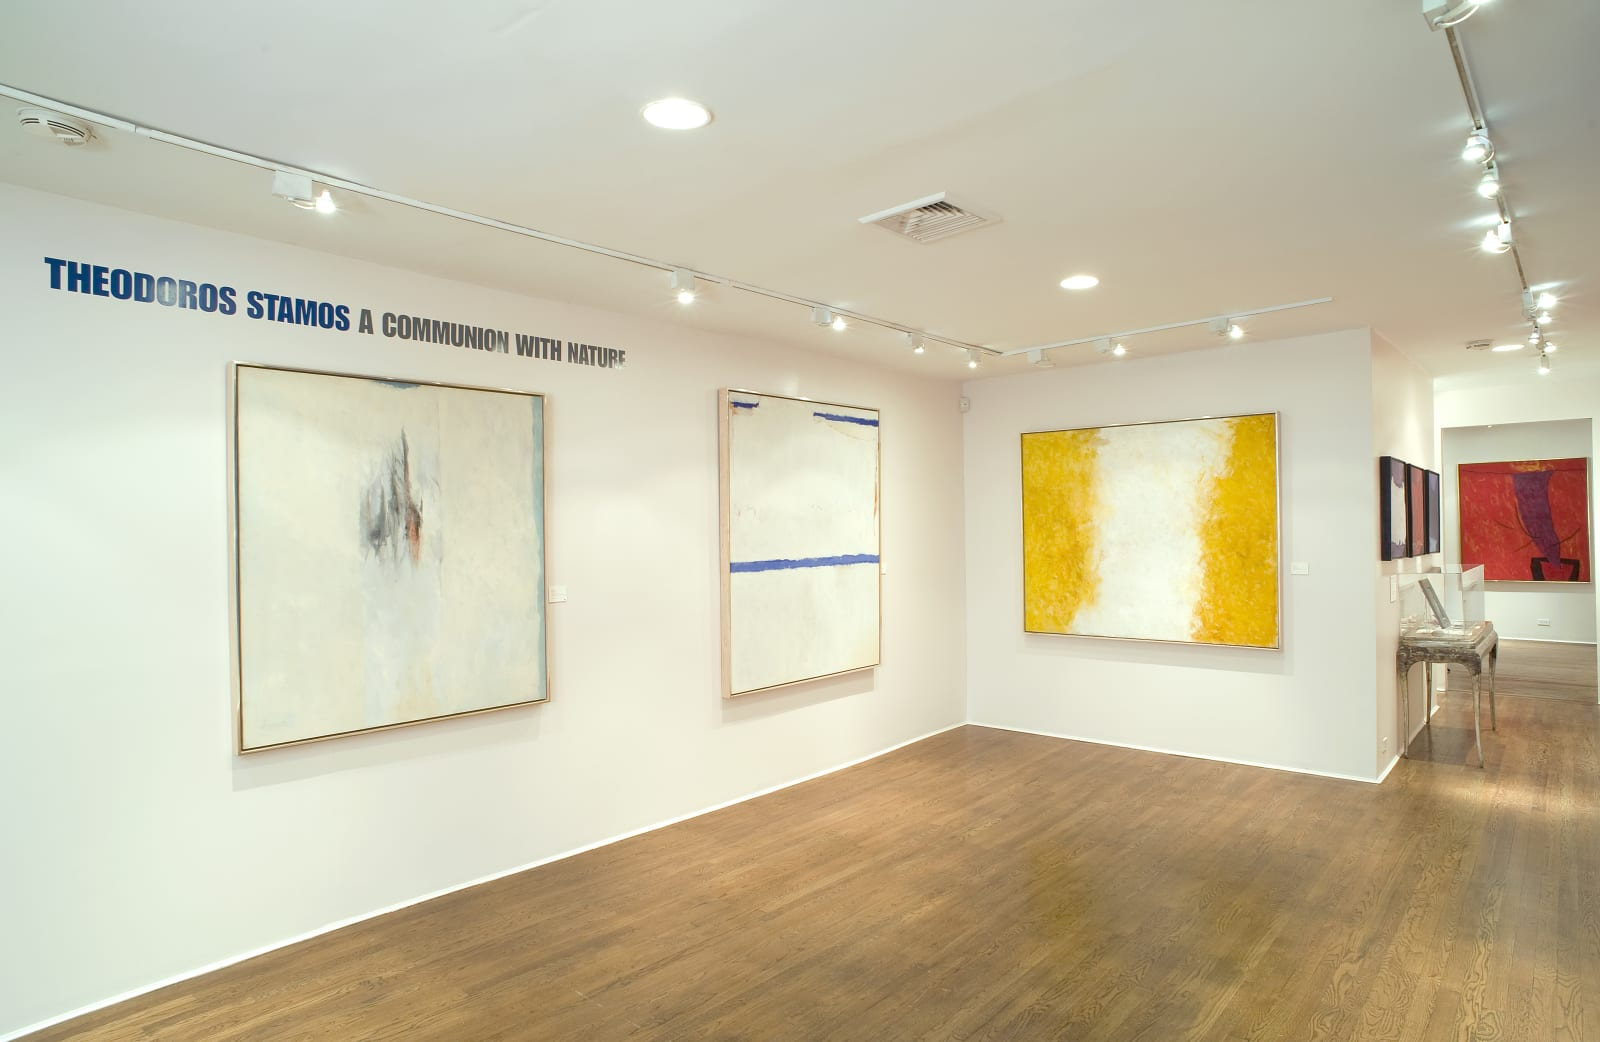 Installation view: Theodoros Stamos: A Communion with Nature